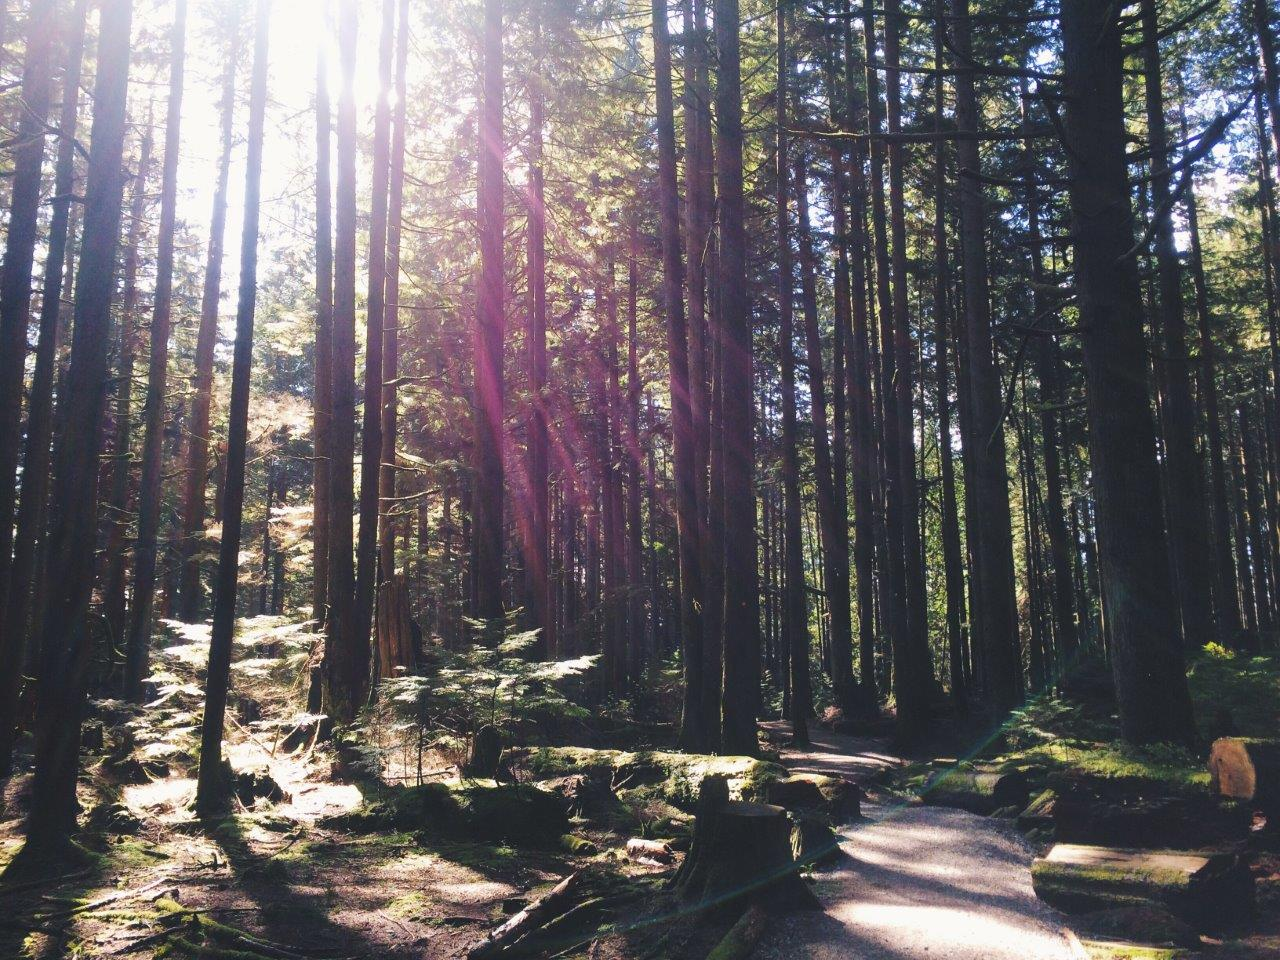 Baden Powell Trail: Lynn Valley to Grouse Mountain Hike